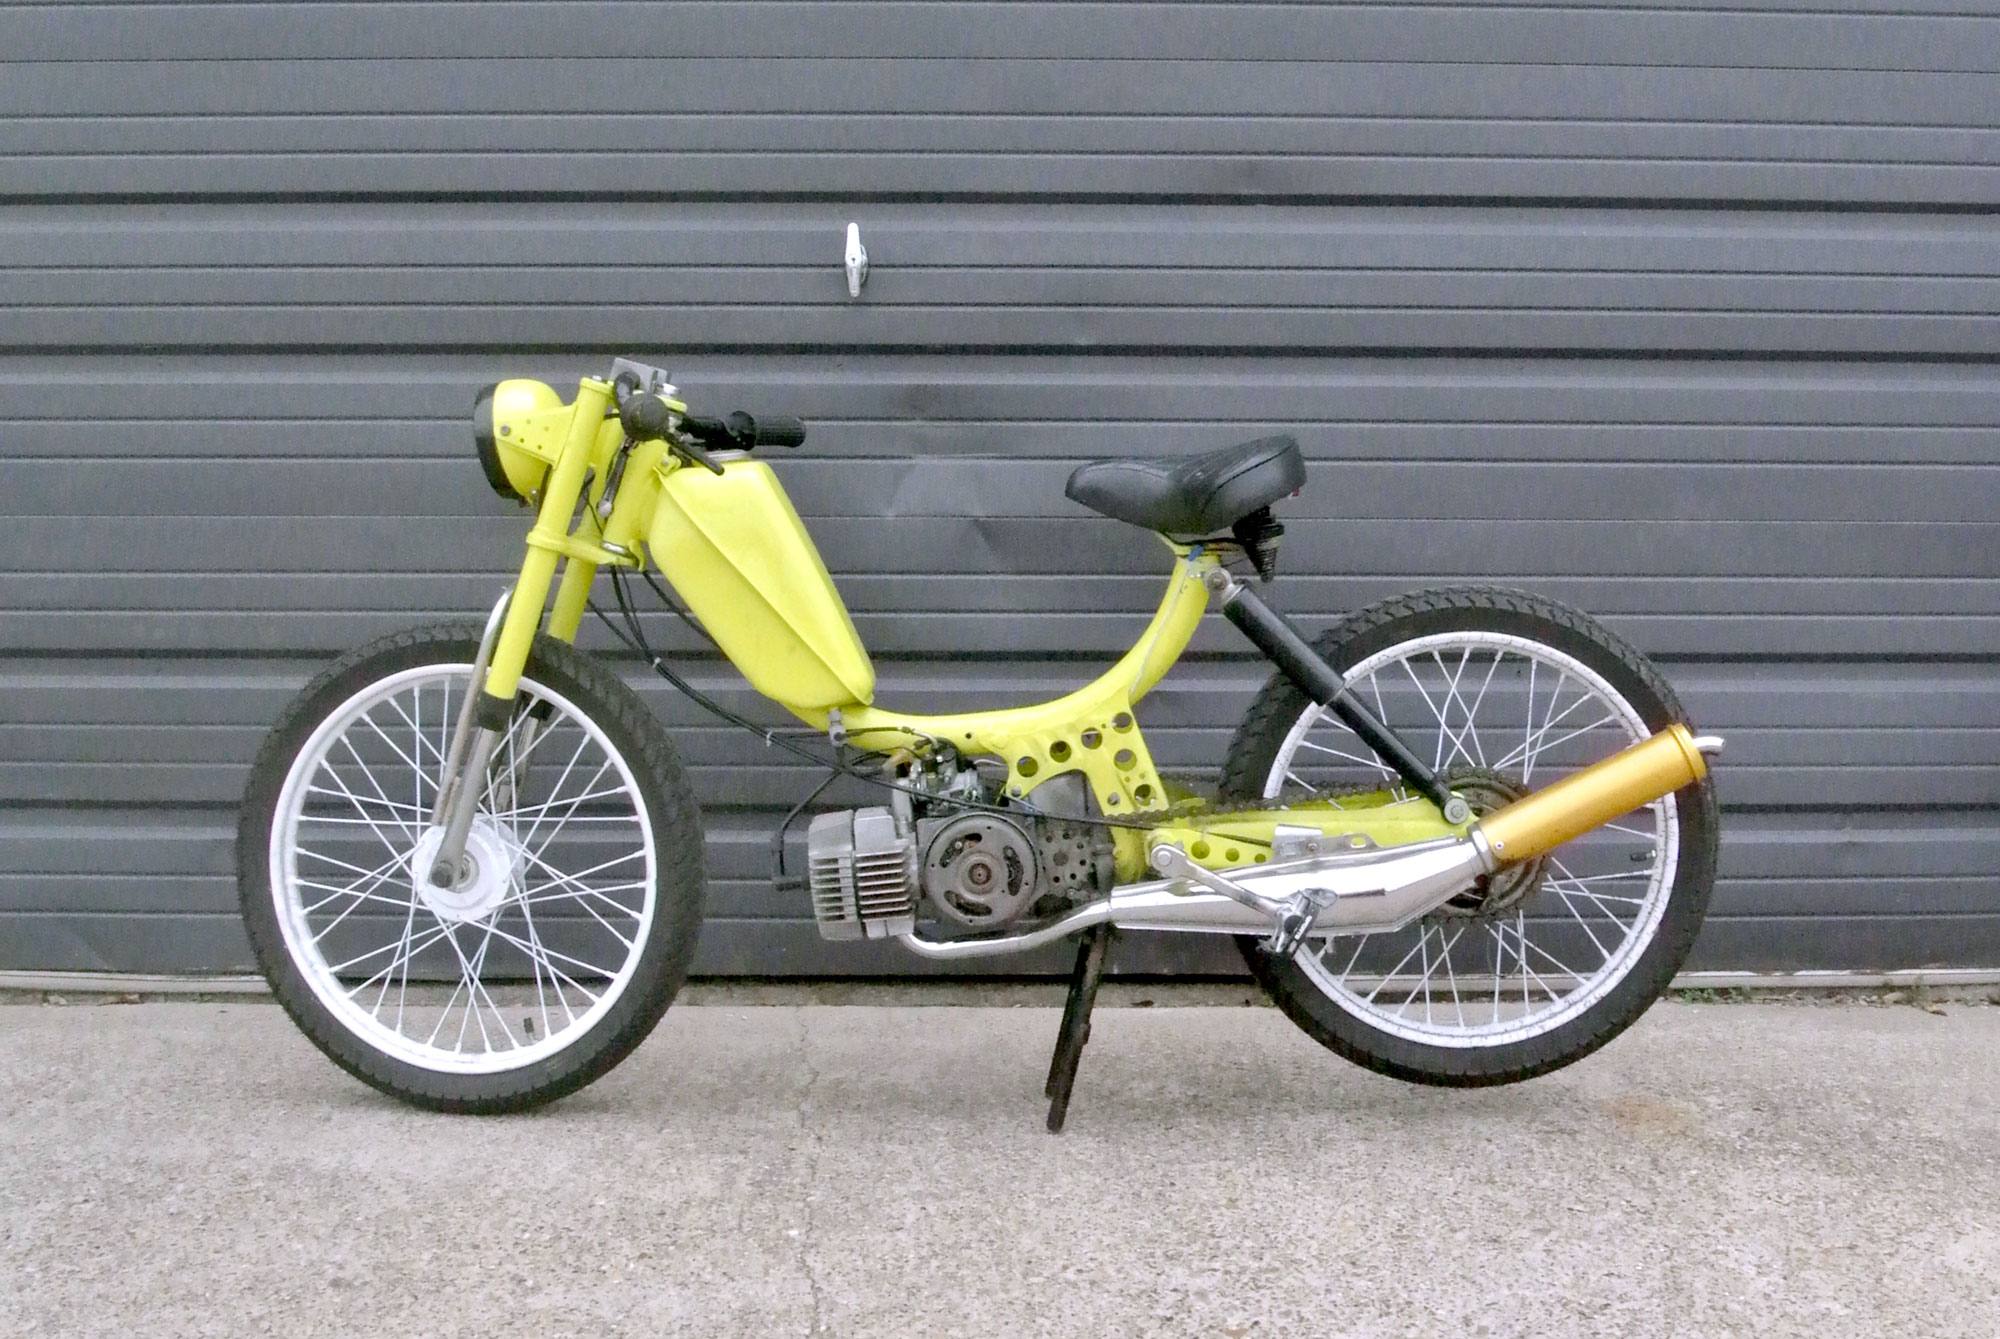 moped-1978-freespirit-neon-yellow-CB001_1.jpg